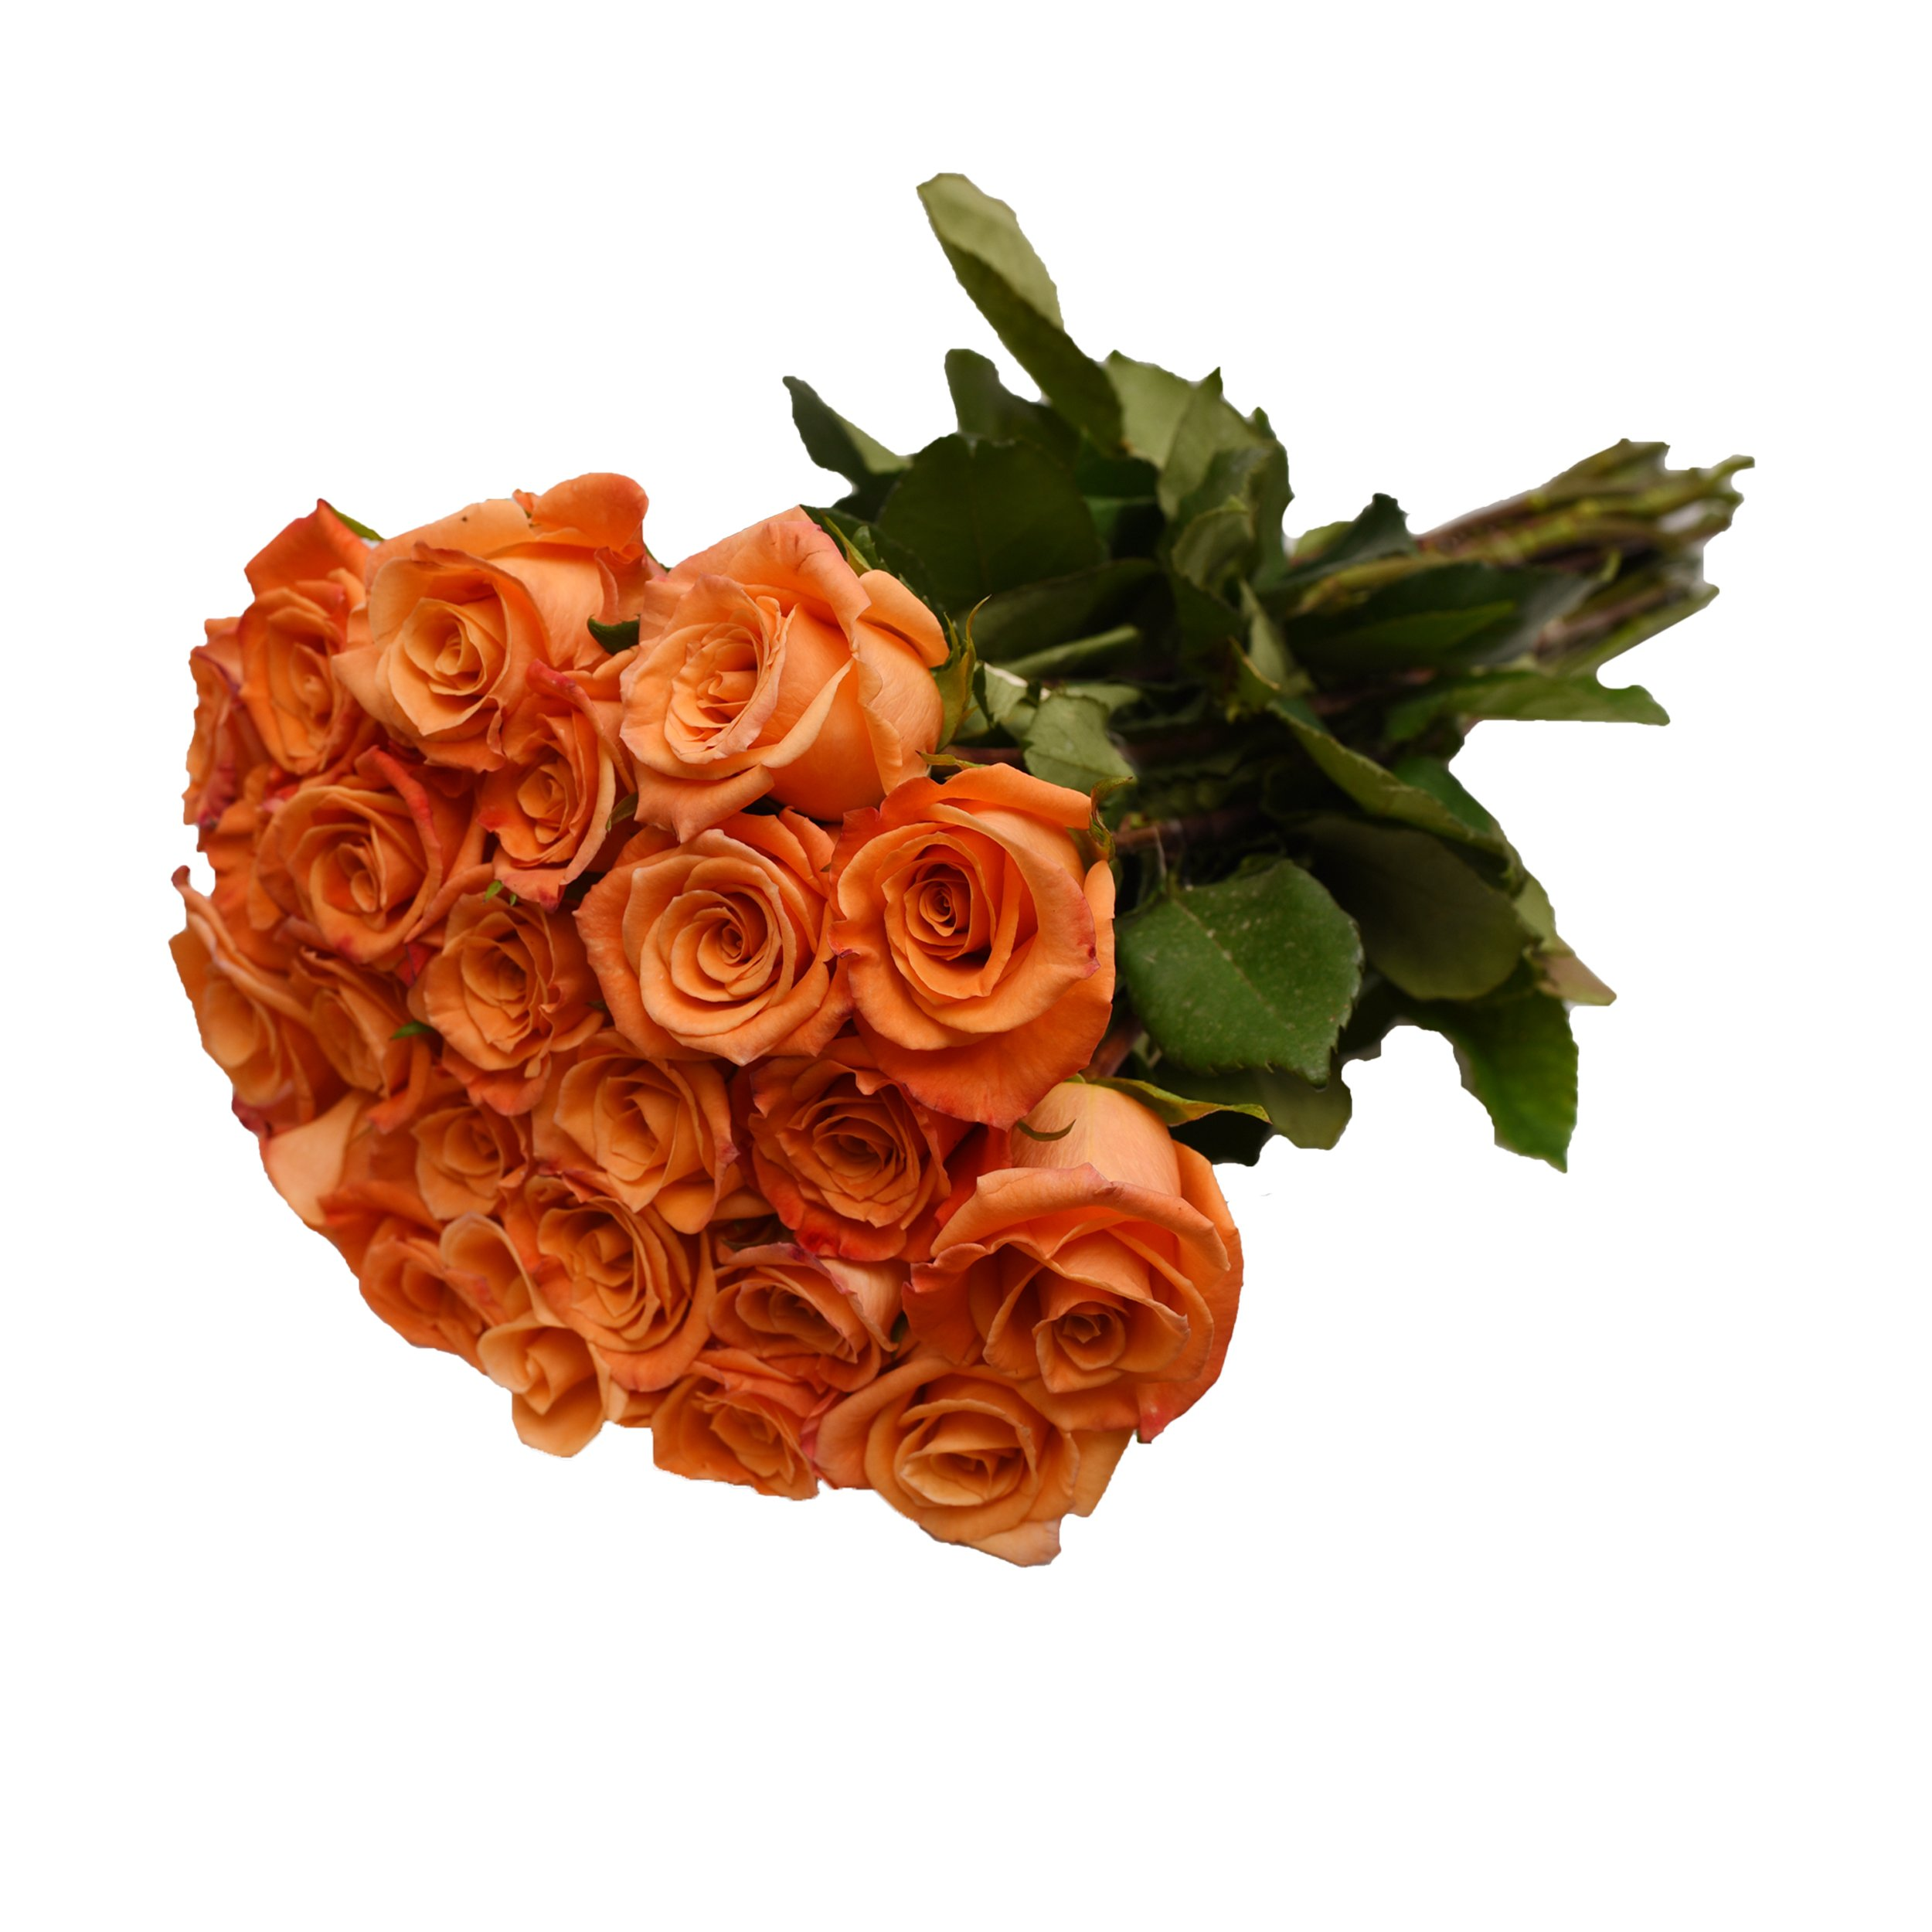 Farm Fresh Natural Orange Roses - 16 in - 125 stems by Bloomingmore